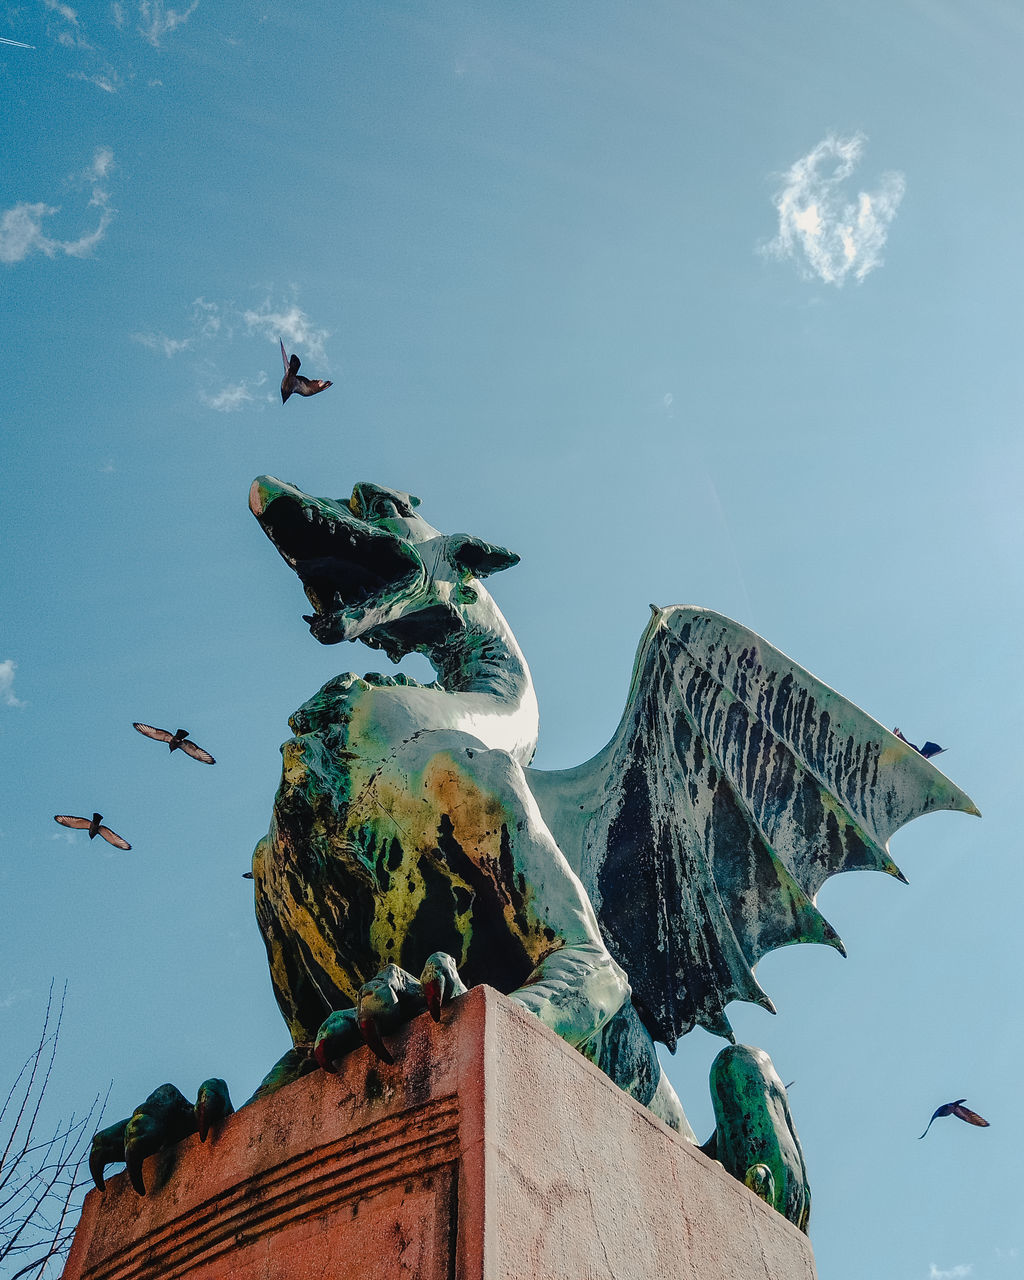 LOW ANGLE VIEW OF SEAGULLS STATUE